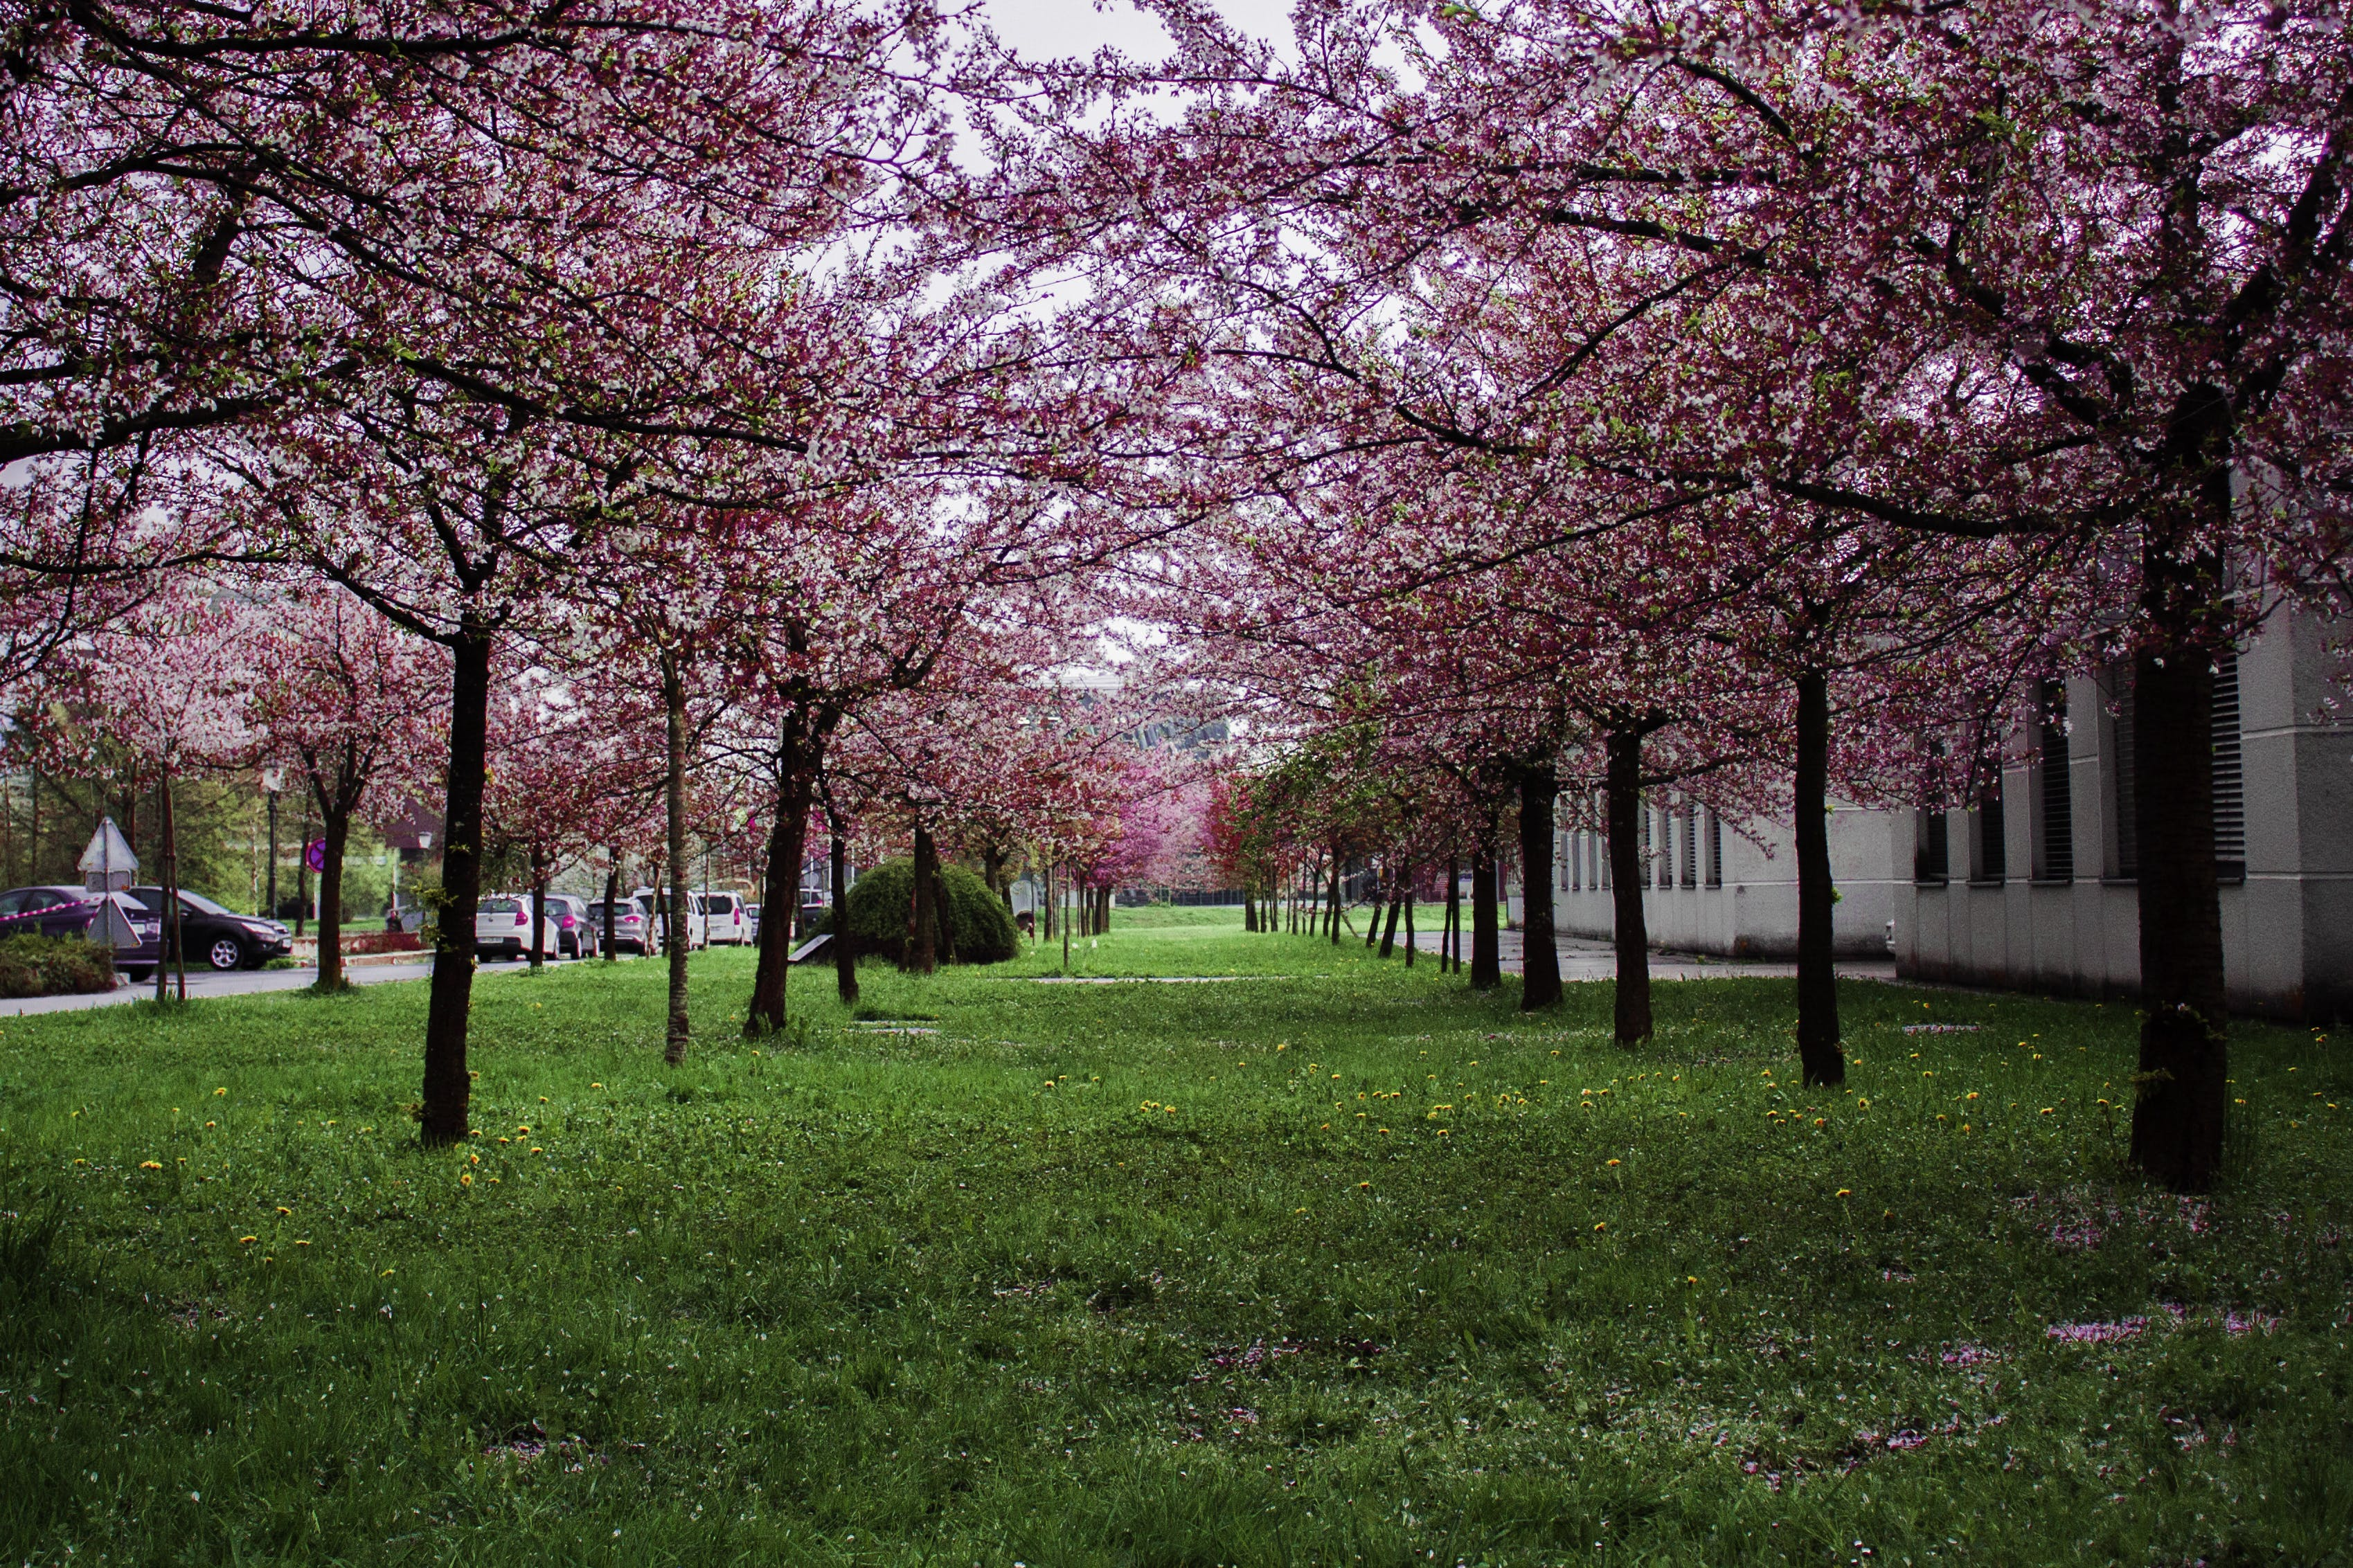 Pink Leafed Trees on Green Grass Field